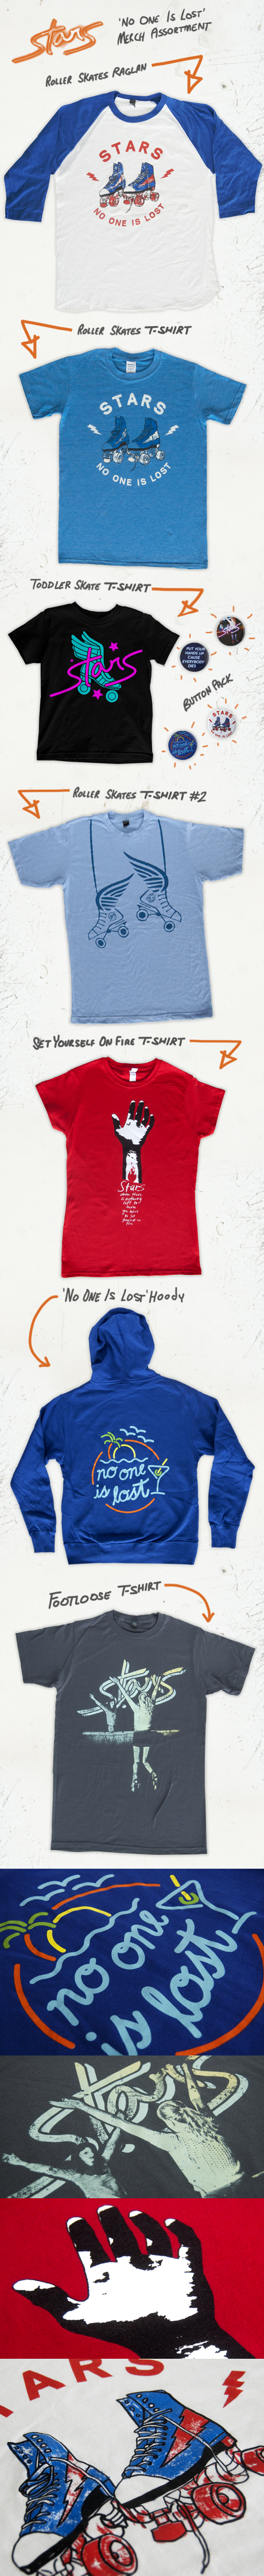 TheCBP.com - Stars' No One Is Lost Merch Assortment